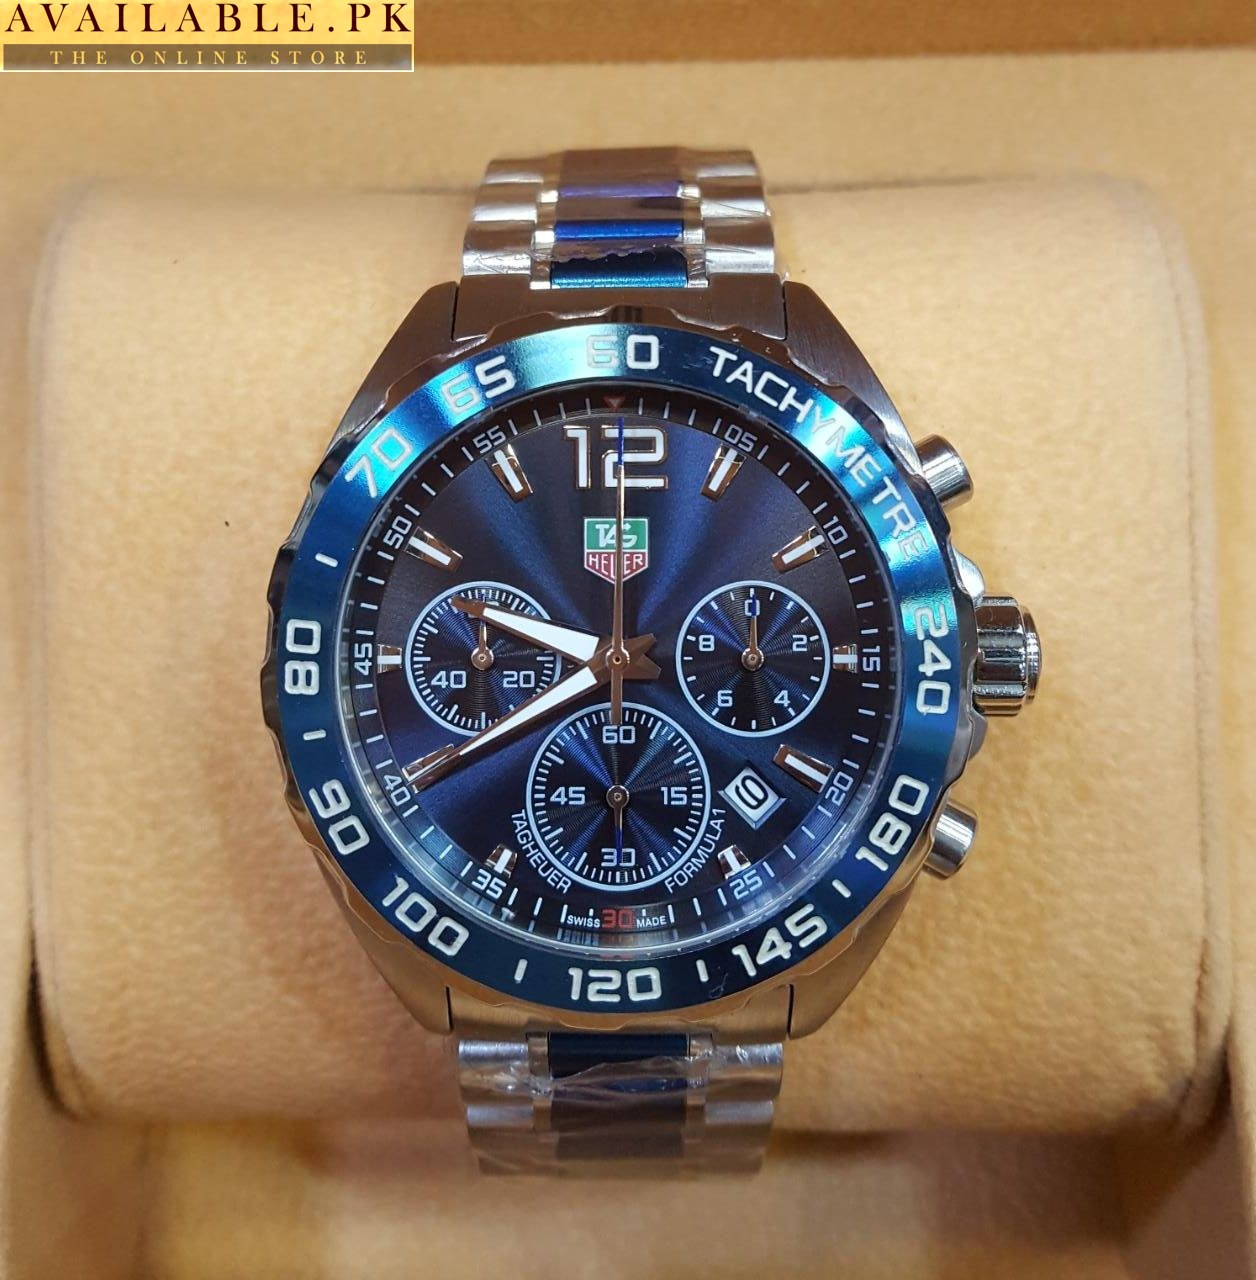 827479c7d16 Tag heuer Formula 1 Silver Blue Chronograph Men's Watch Price In Pakistan